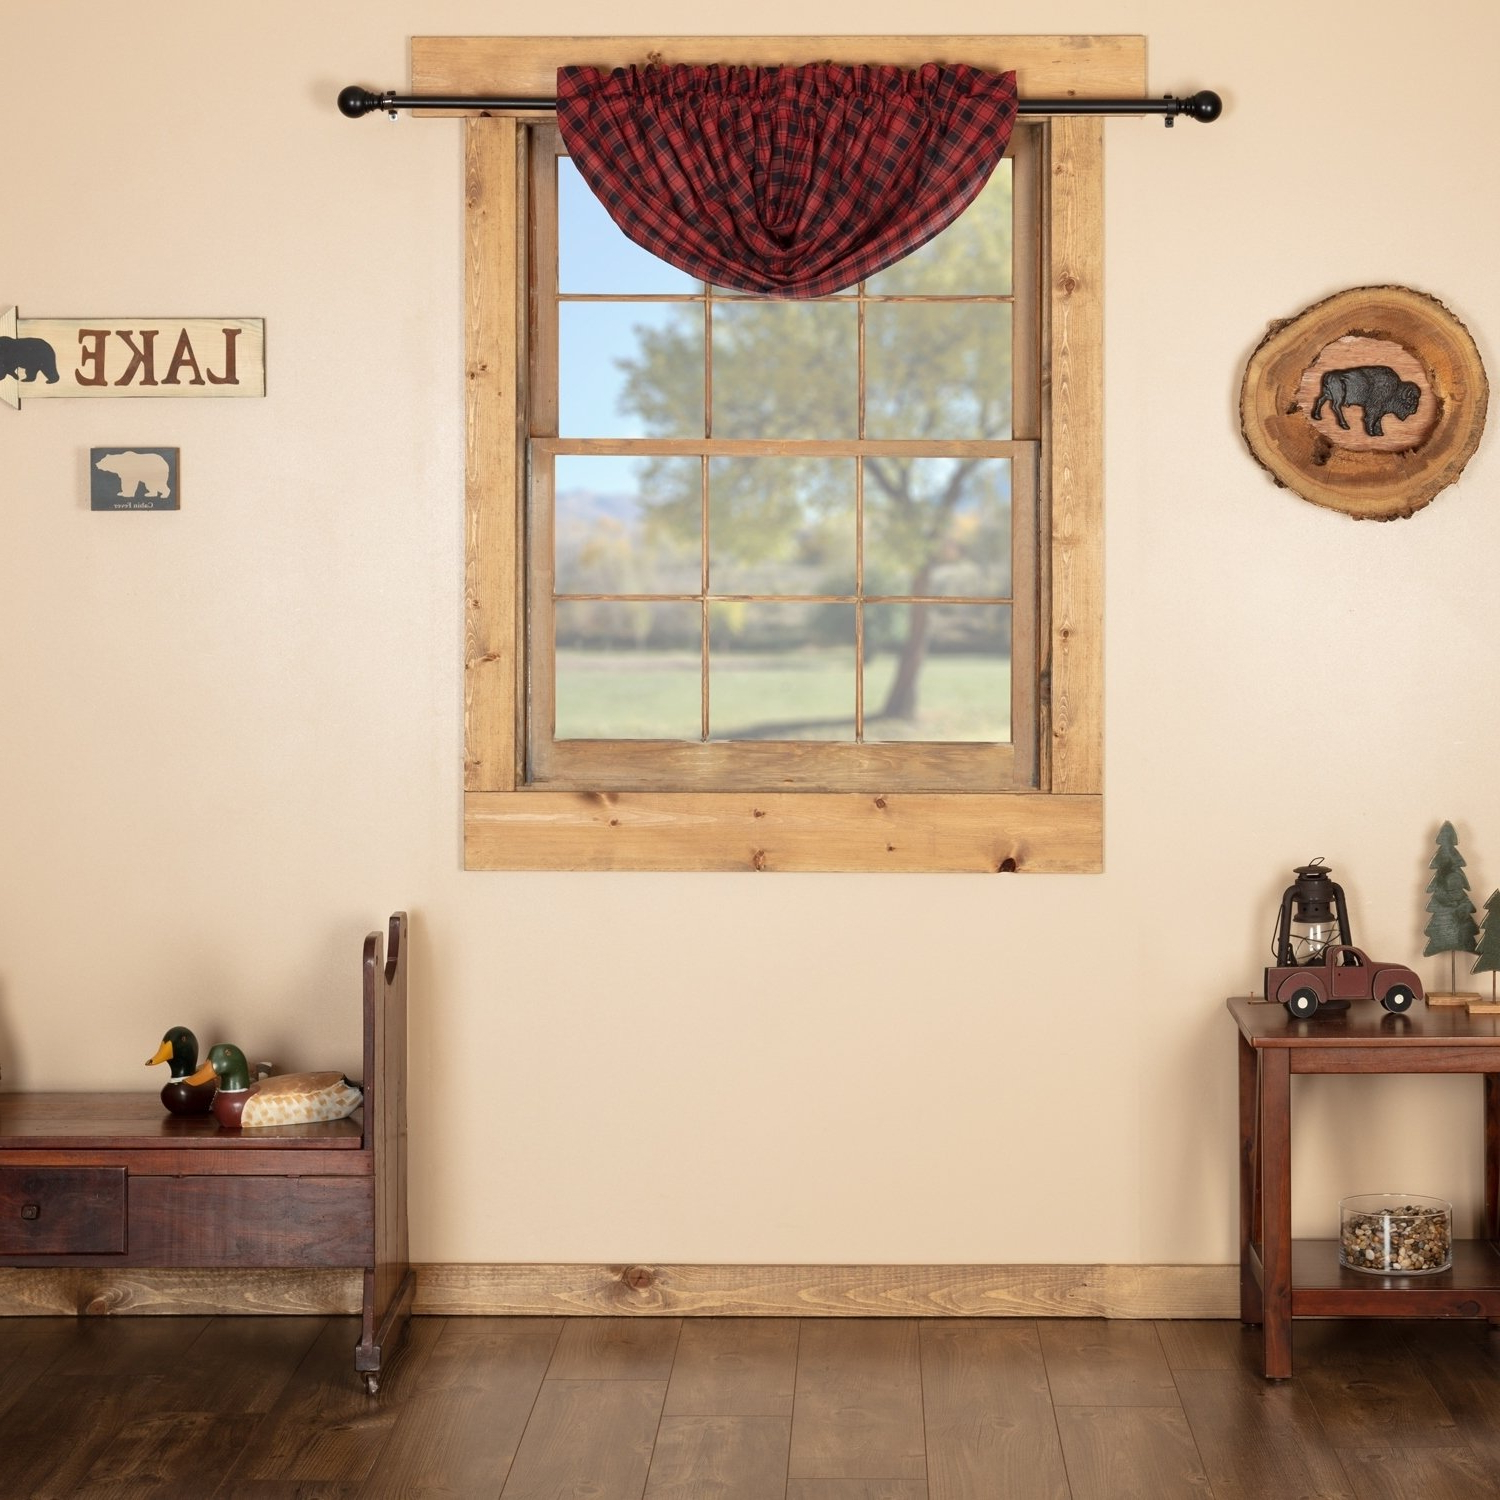 Red Rustic Kitchen Curtains In Current Red Rustic Kitchen Curtains Shasta Cabin Balloon Valance Rod (View 4 of 20)